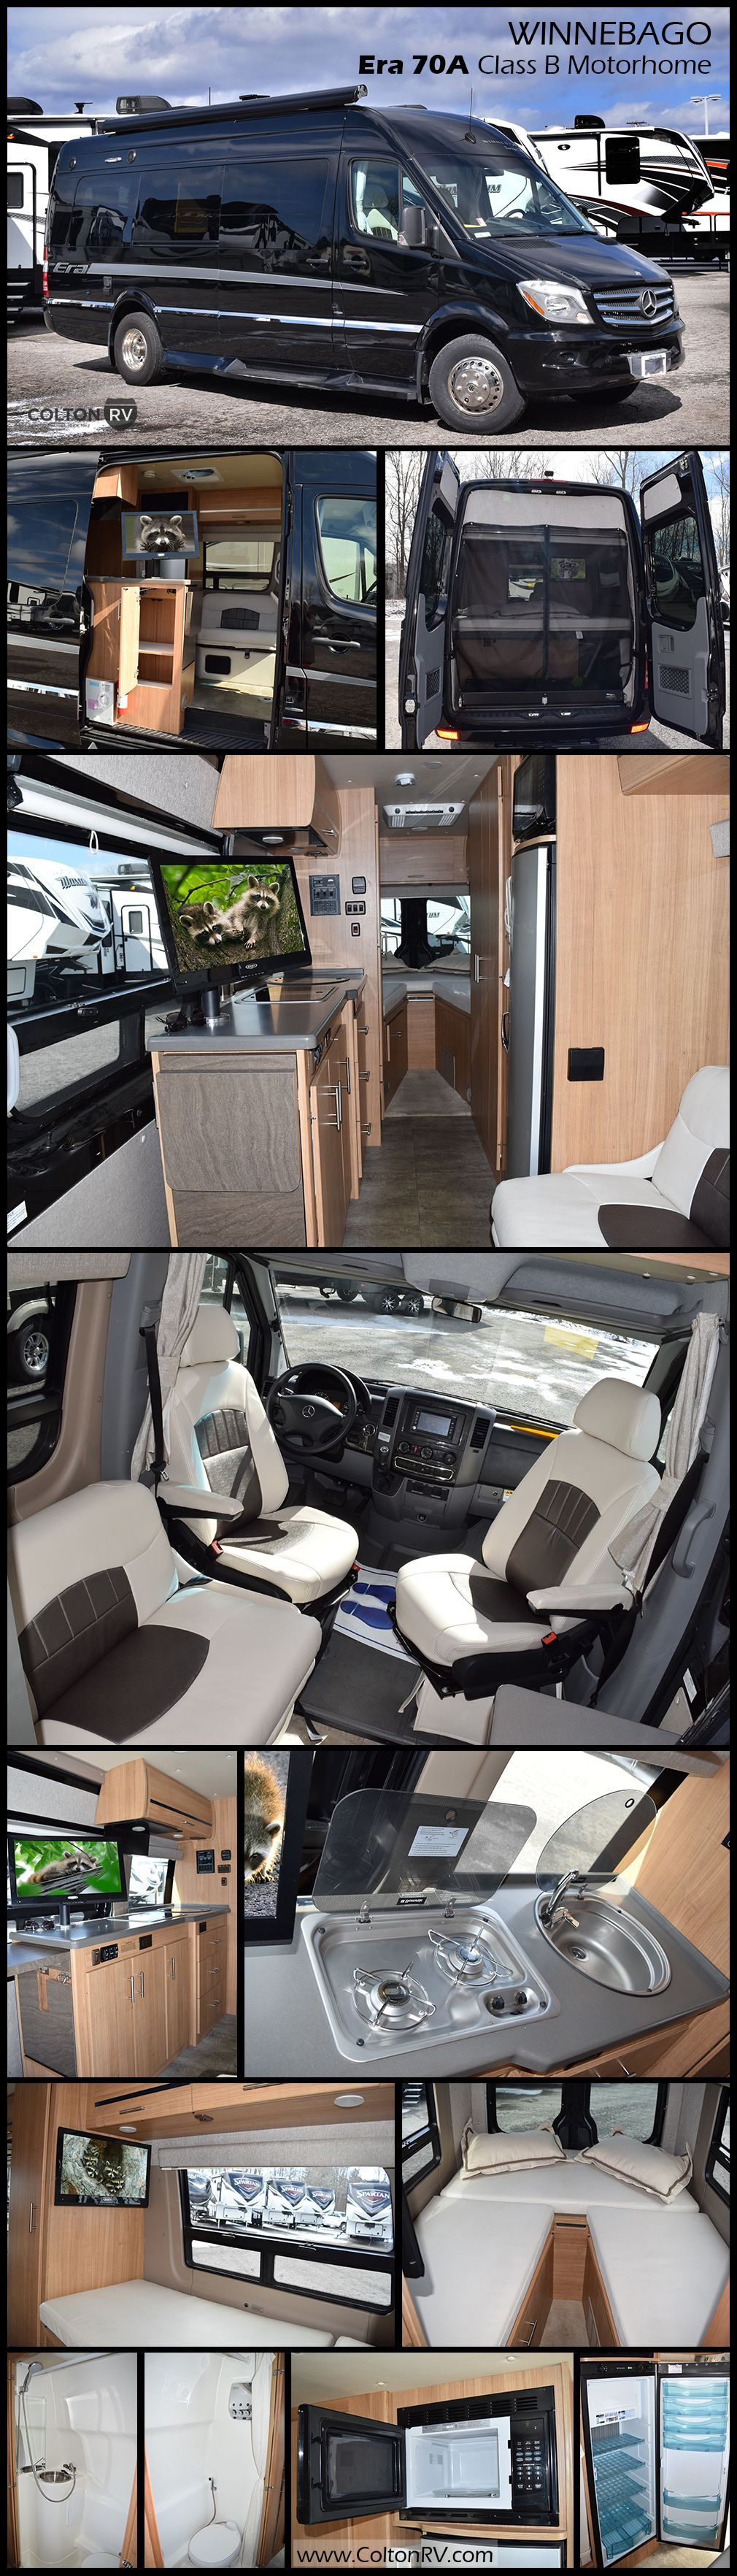 The WINNEBAGO TOURING COACH ERA Class B Motorhome Just Keeps Getting Better And Even More Innovative This Popular Mercedes Benz Chassis 70A Floor Plan